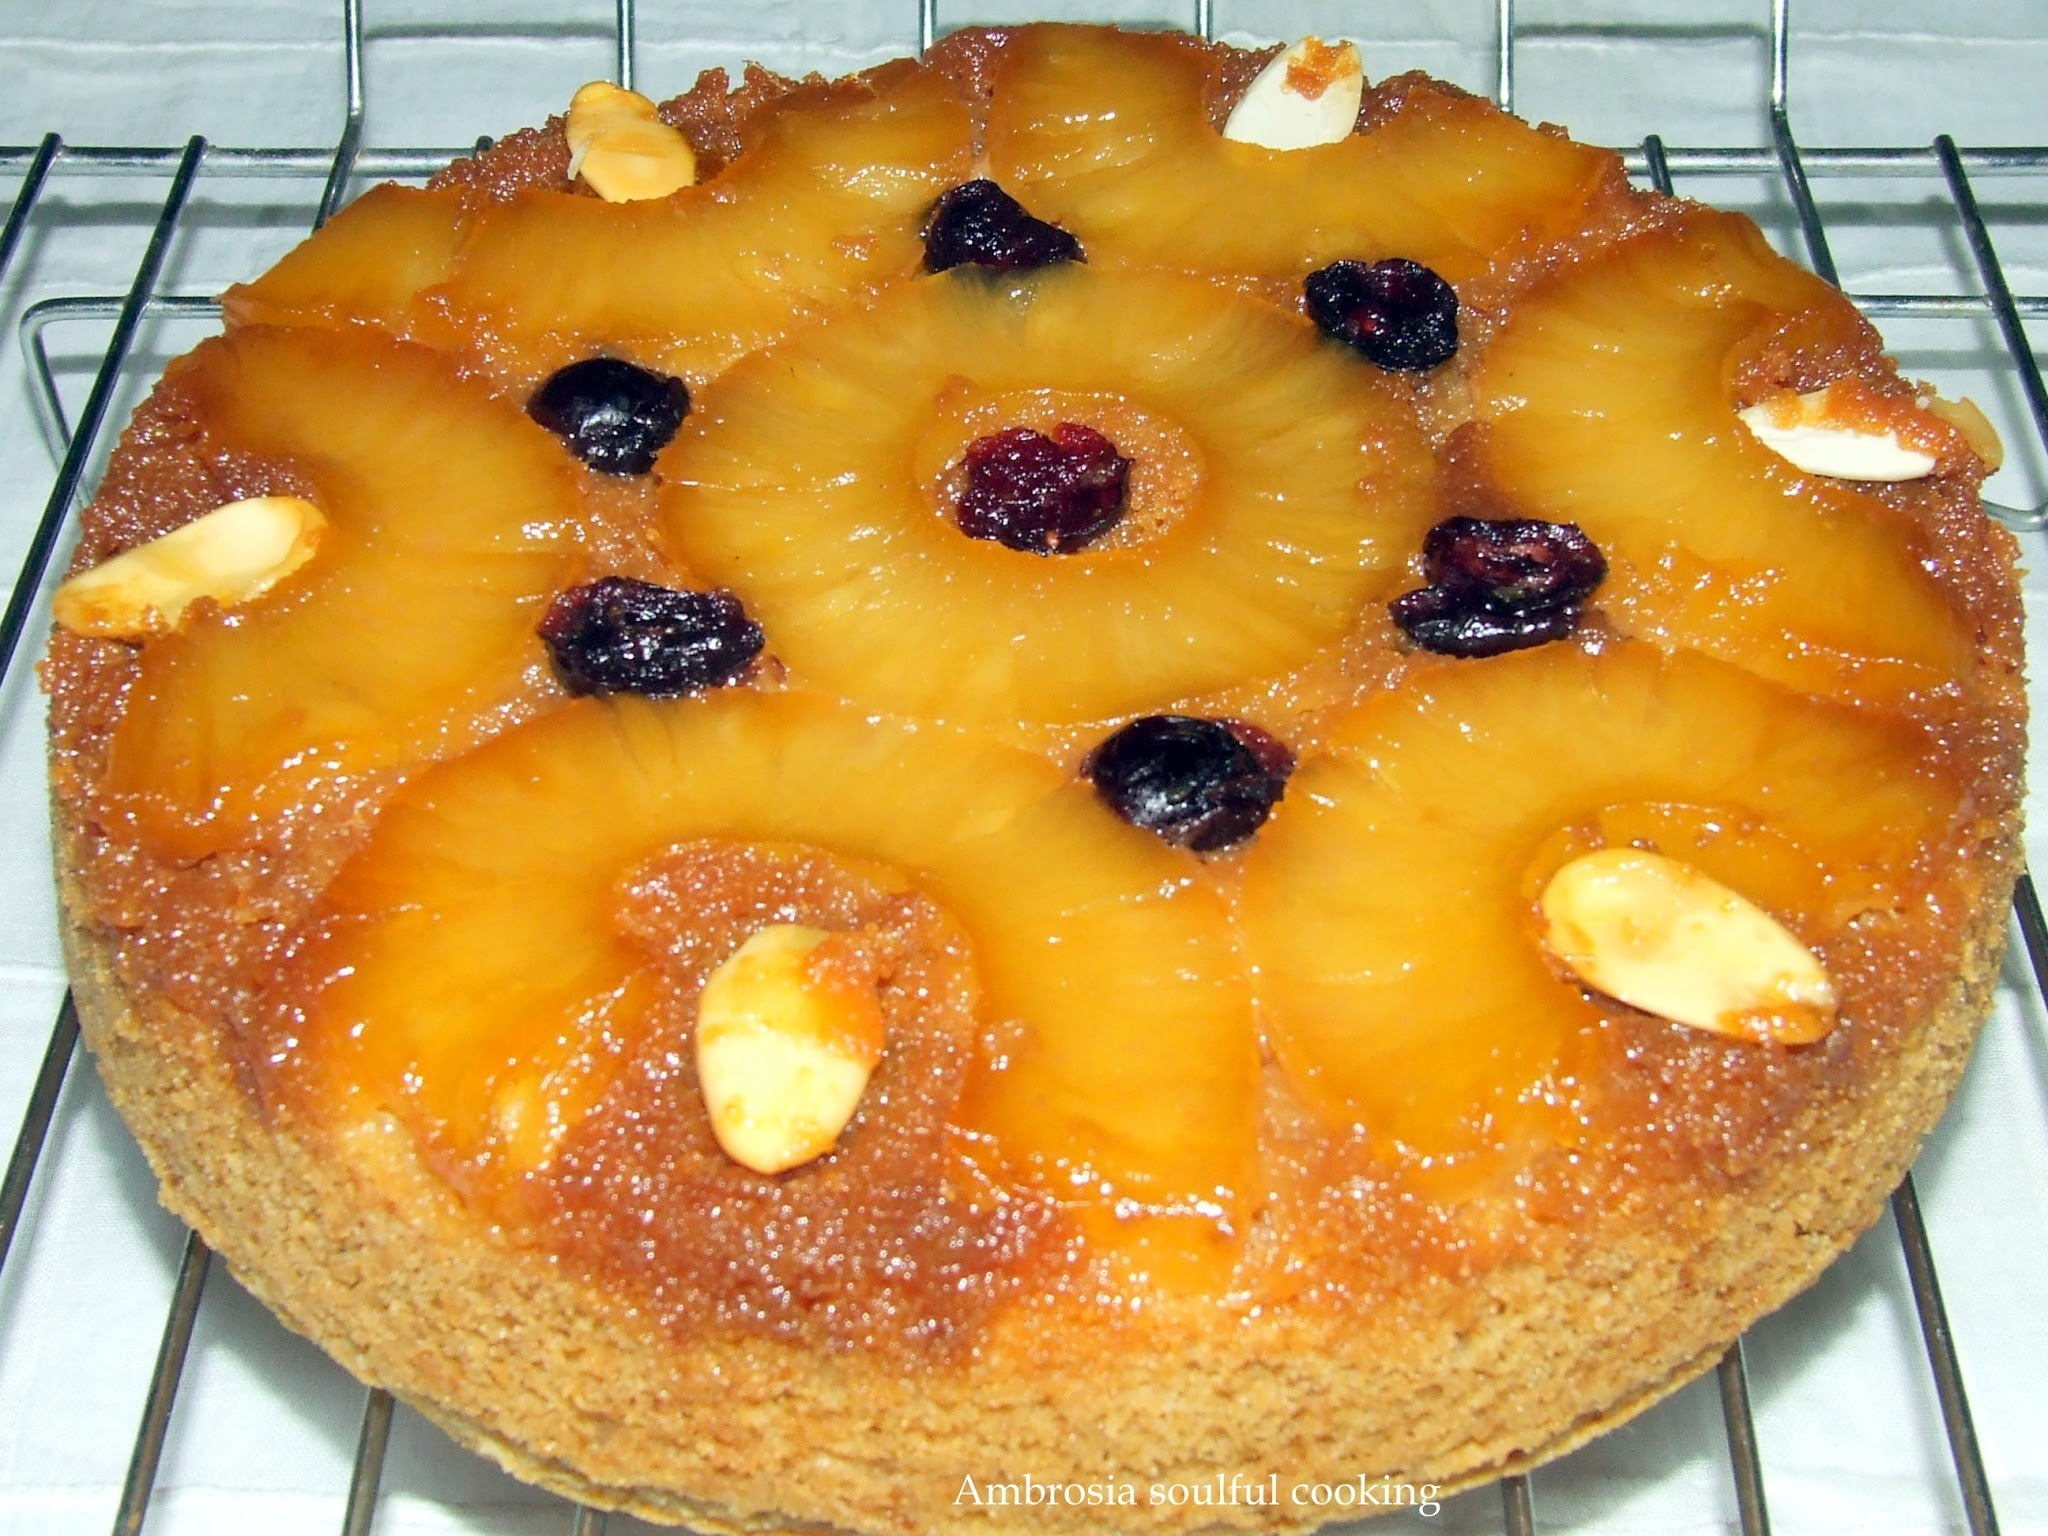 WHOLE WHEAT AND EGGLESS PINEAPPLE UPSIDE DOWN CAKE